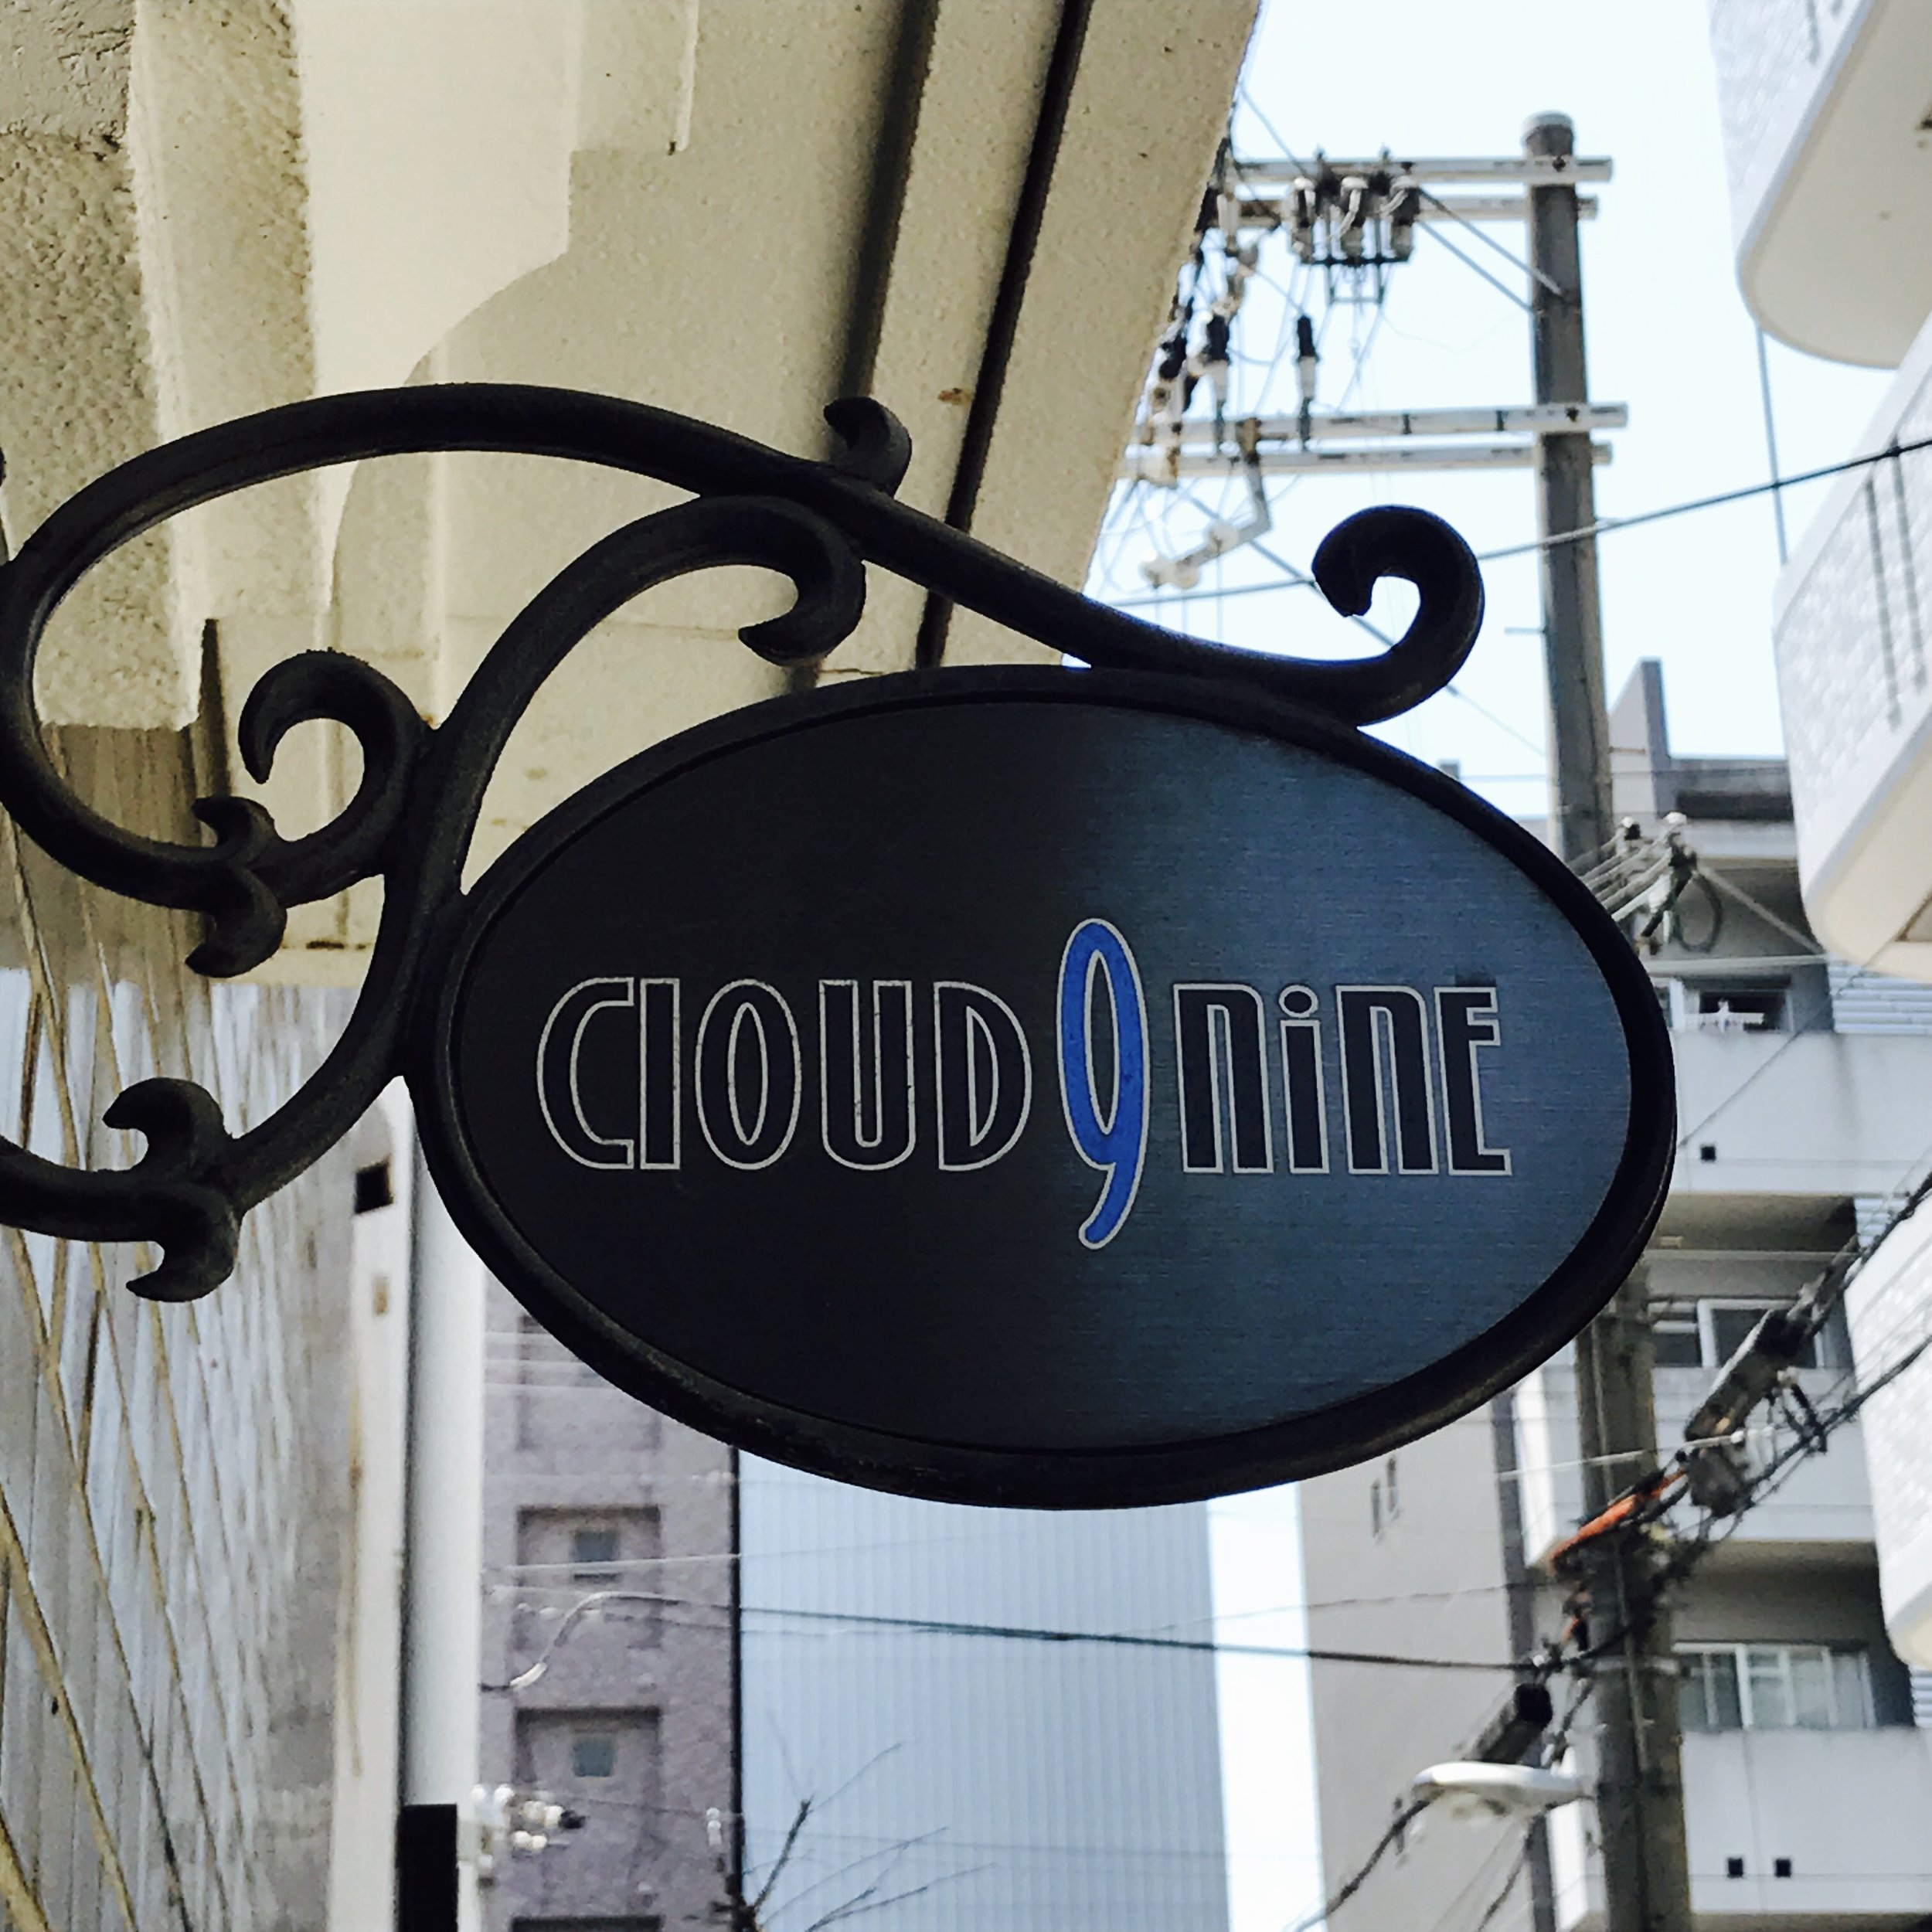 Click here for a complete review of Cloud Nine in Osaka, Japan